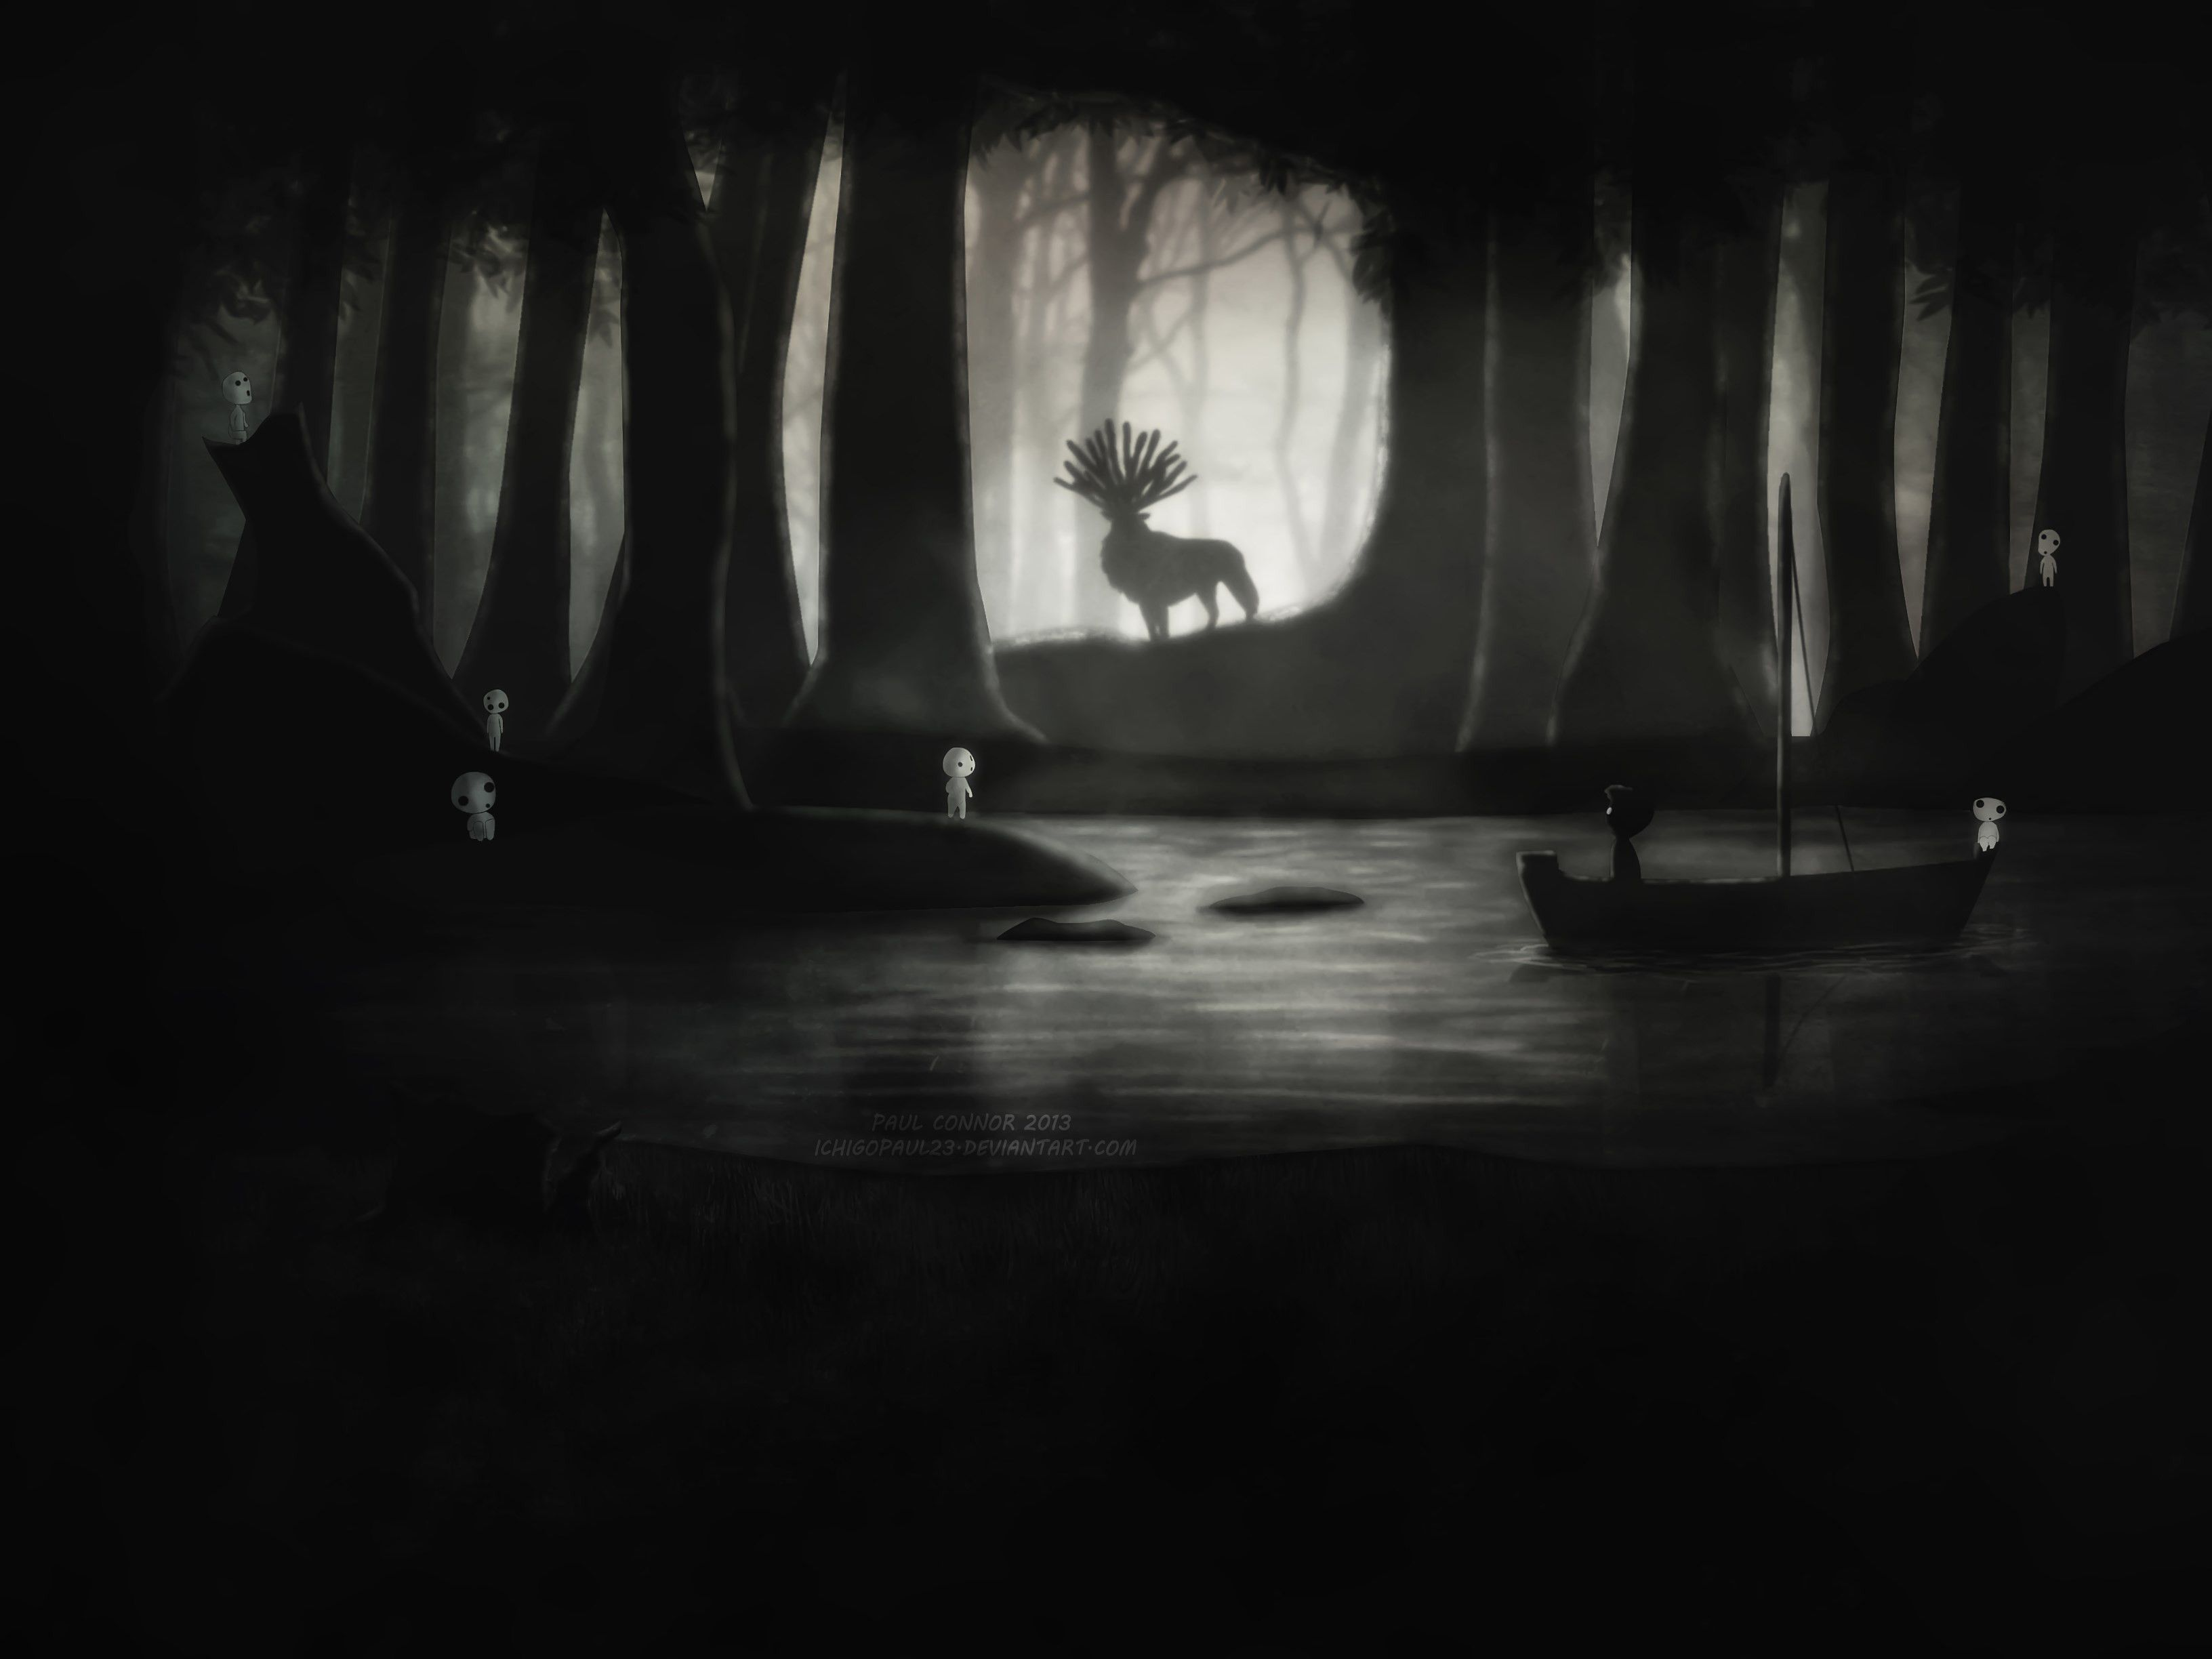 3264x2448 Collection of Limbo Inspired Studio Ghibli wallpapers - Studio ...